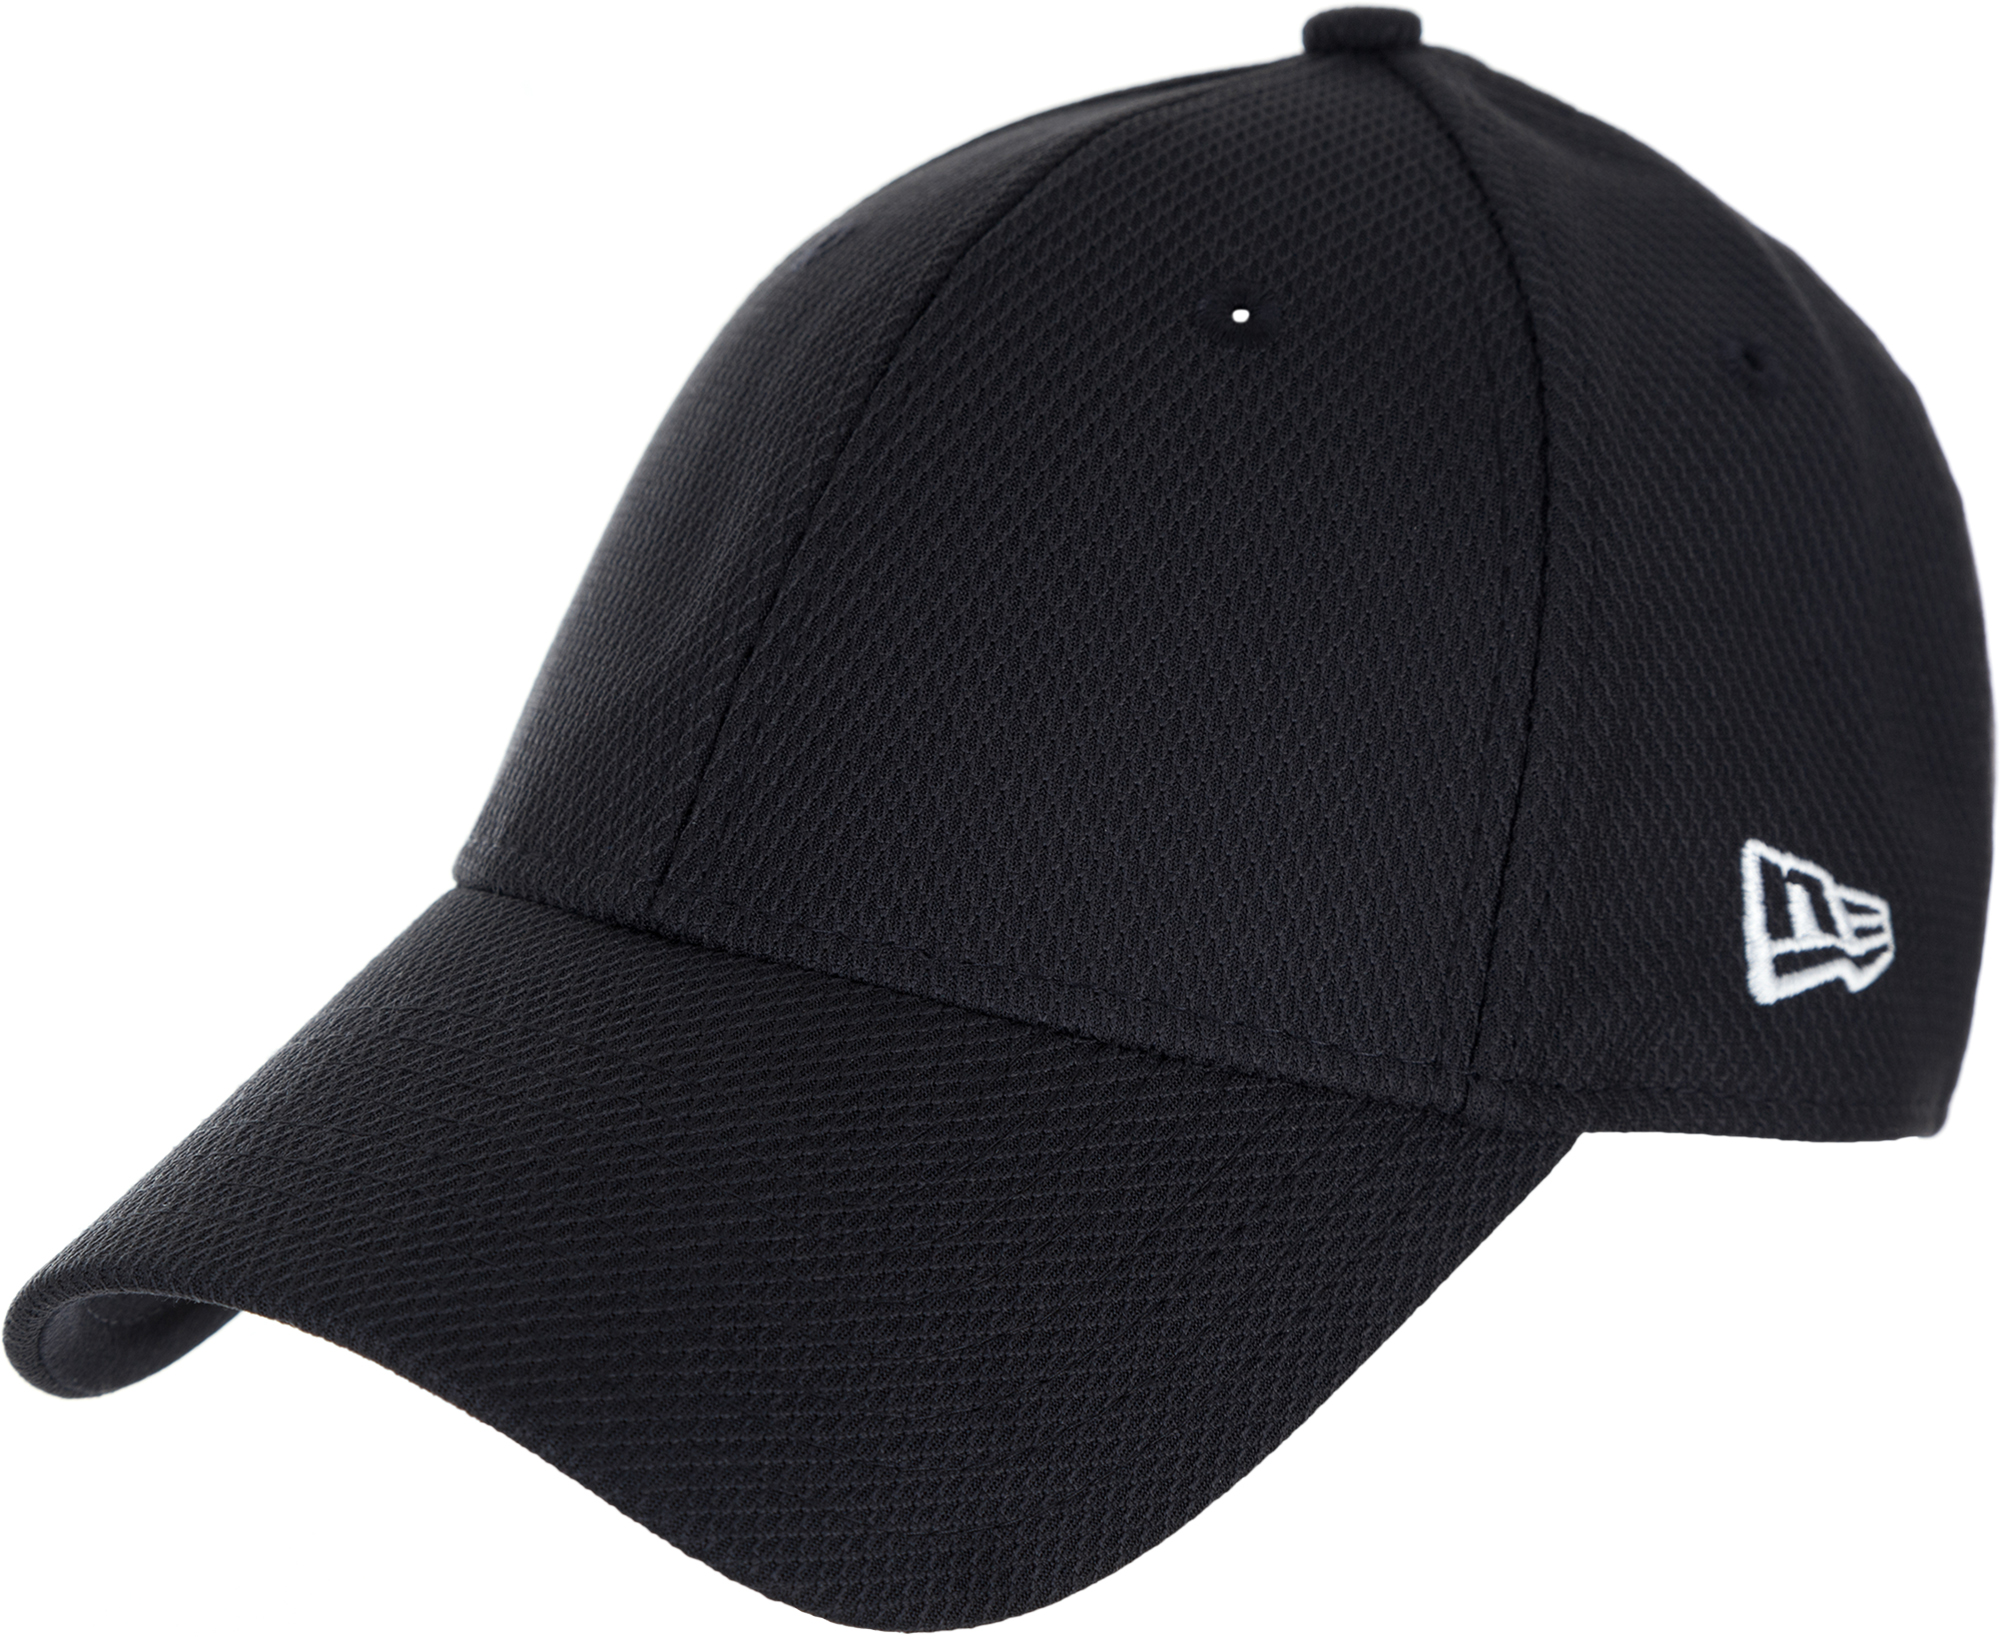 New Era Бейсболка мужская New Era Lic 234 9Forty Diamond new era бейсболка мужская new era